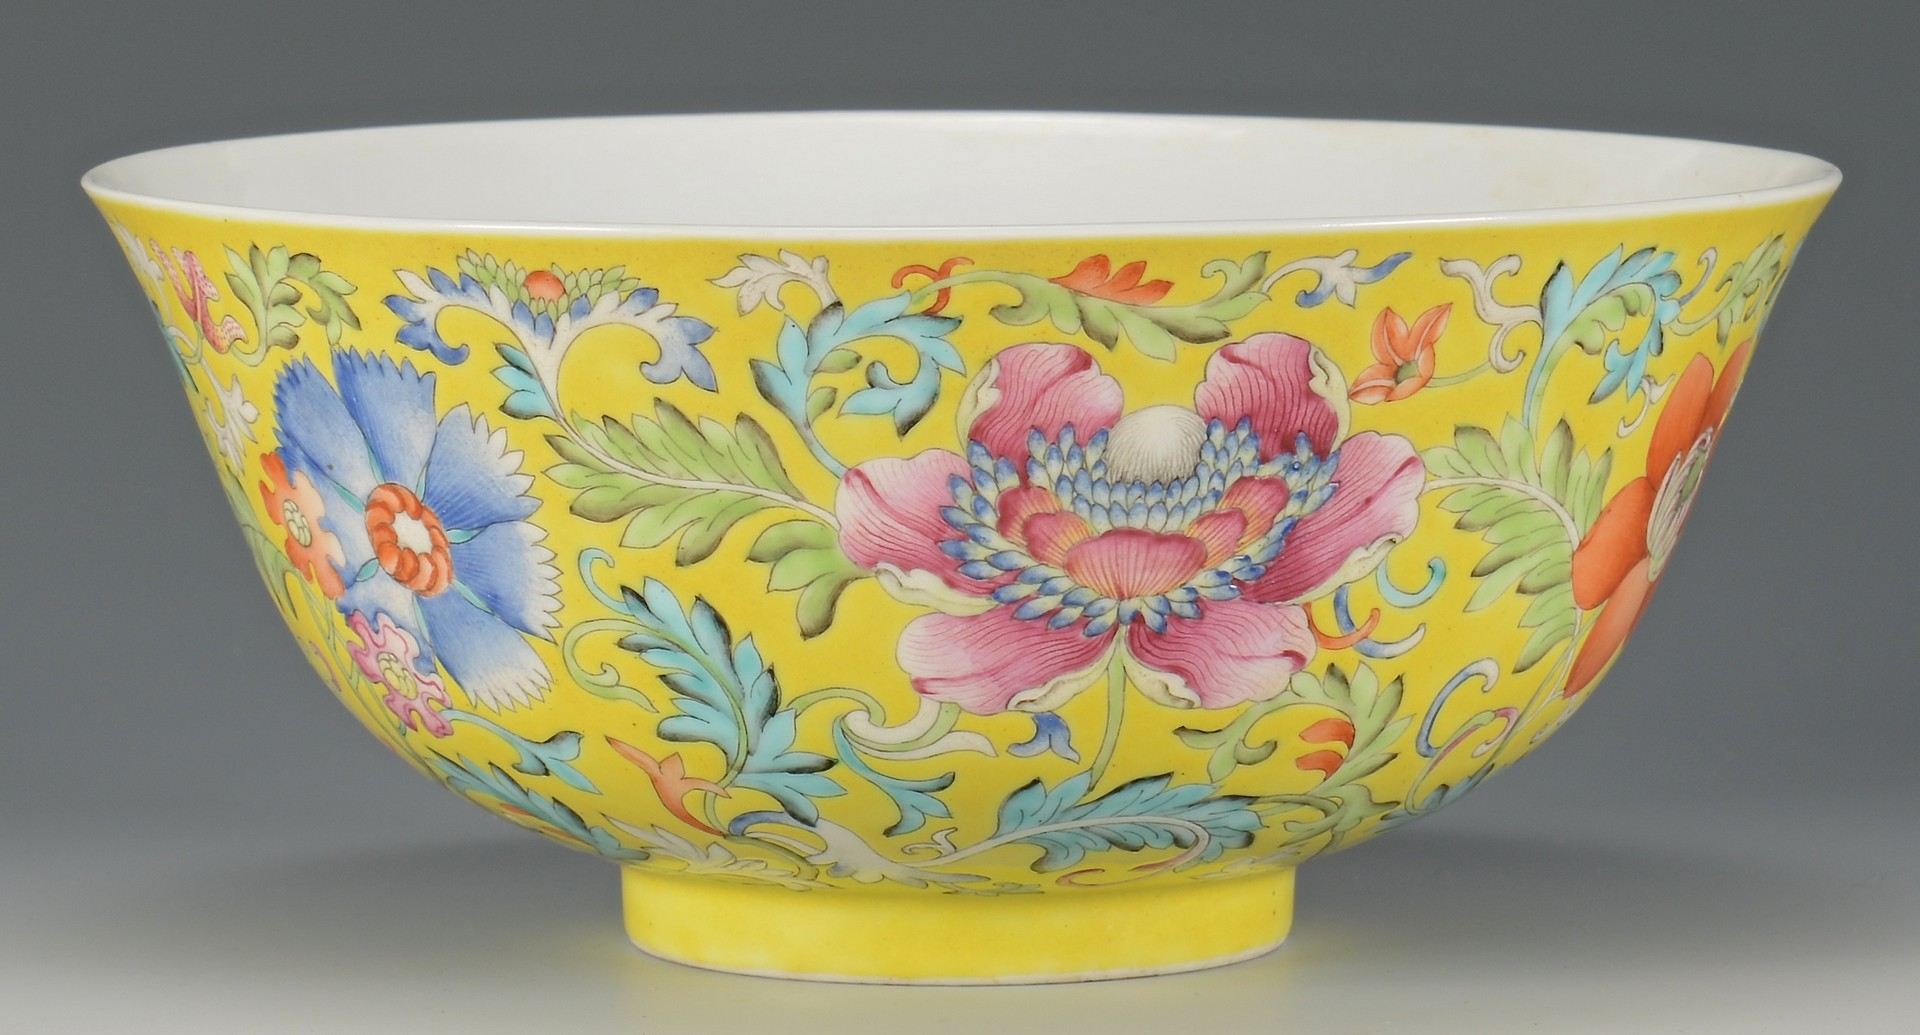 Lot 19: Pr. Guangxu Chinese Famille Rose Bowls, yellow gro